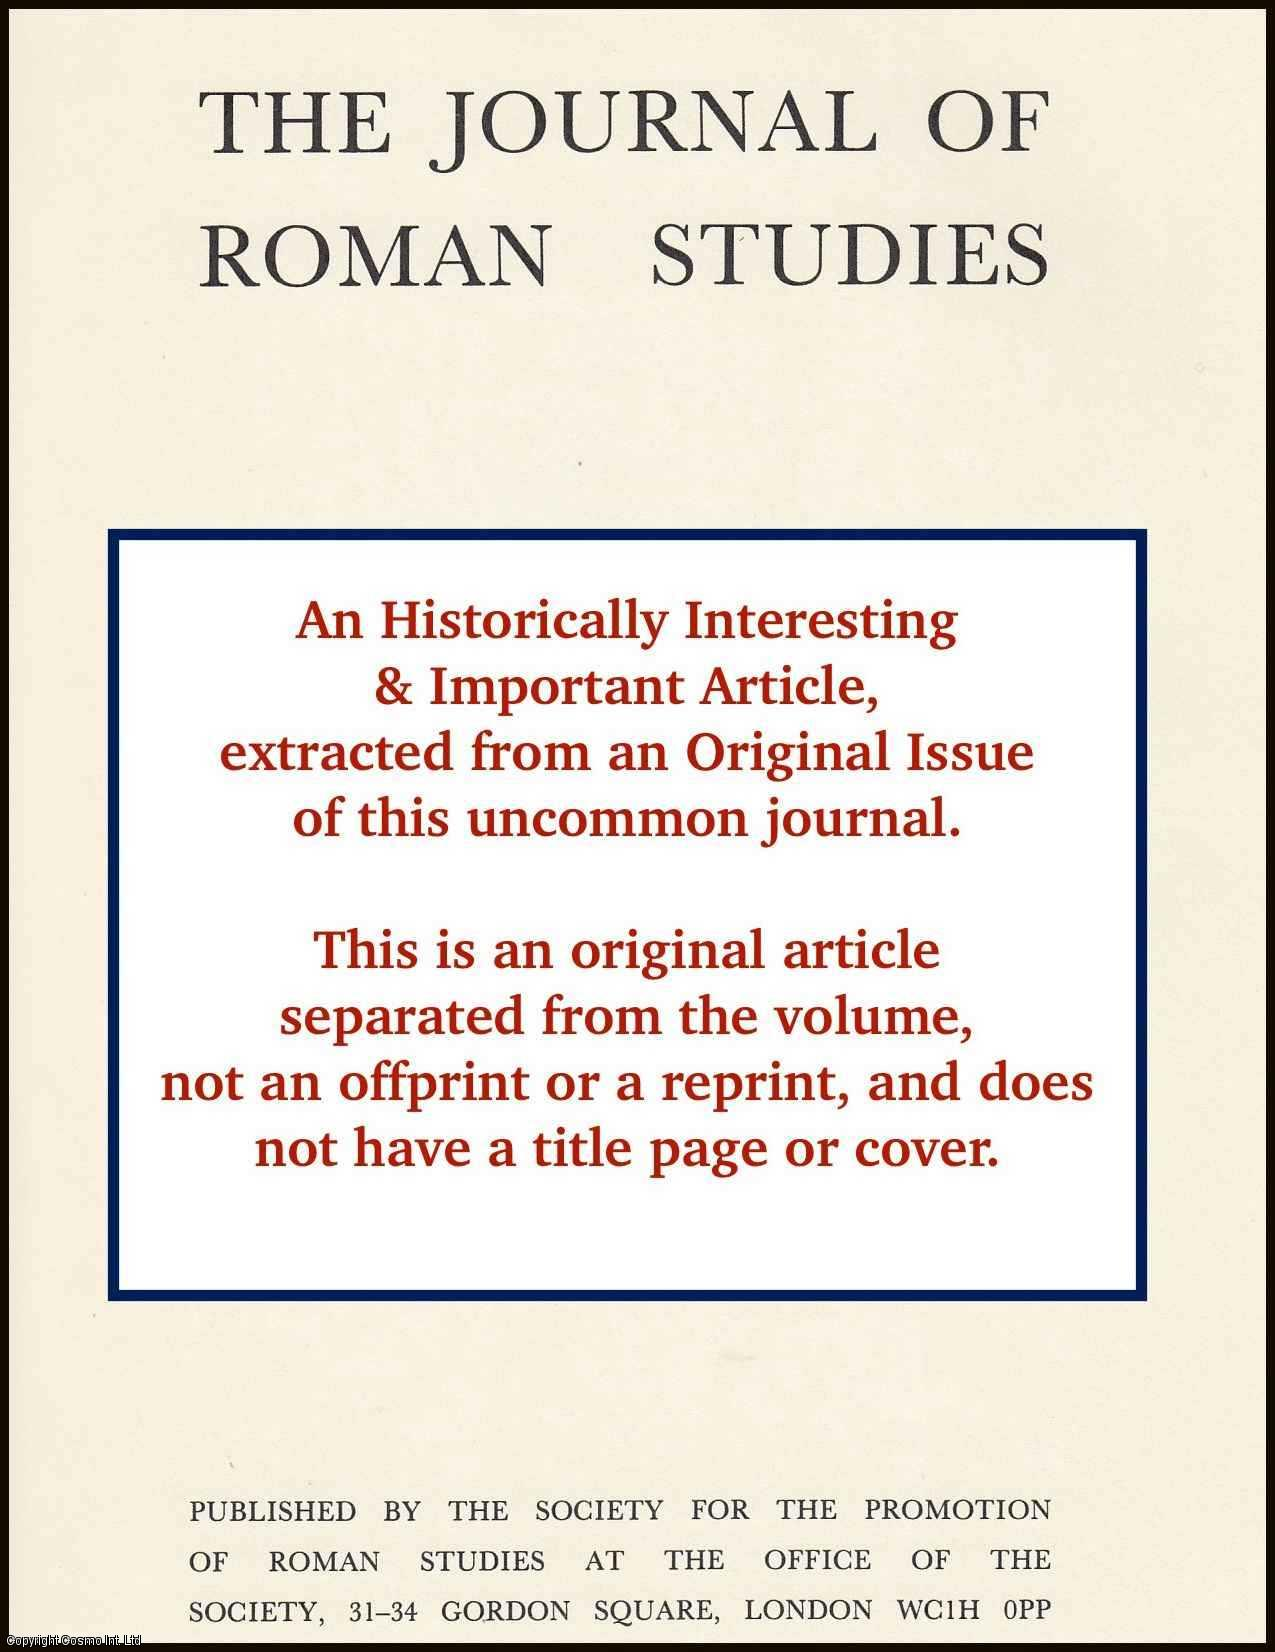 HARRIS, W. V. - A Revisionist View of Roman Money. An original article from the The Journal of Roman Studies 2006.